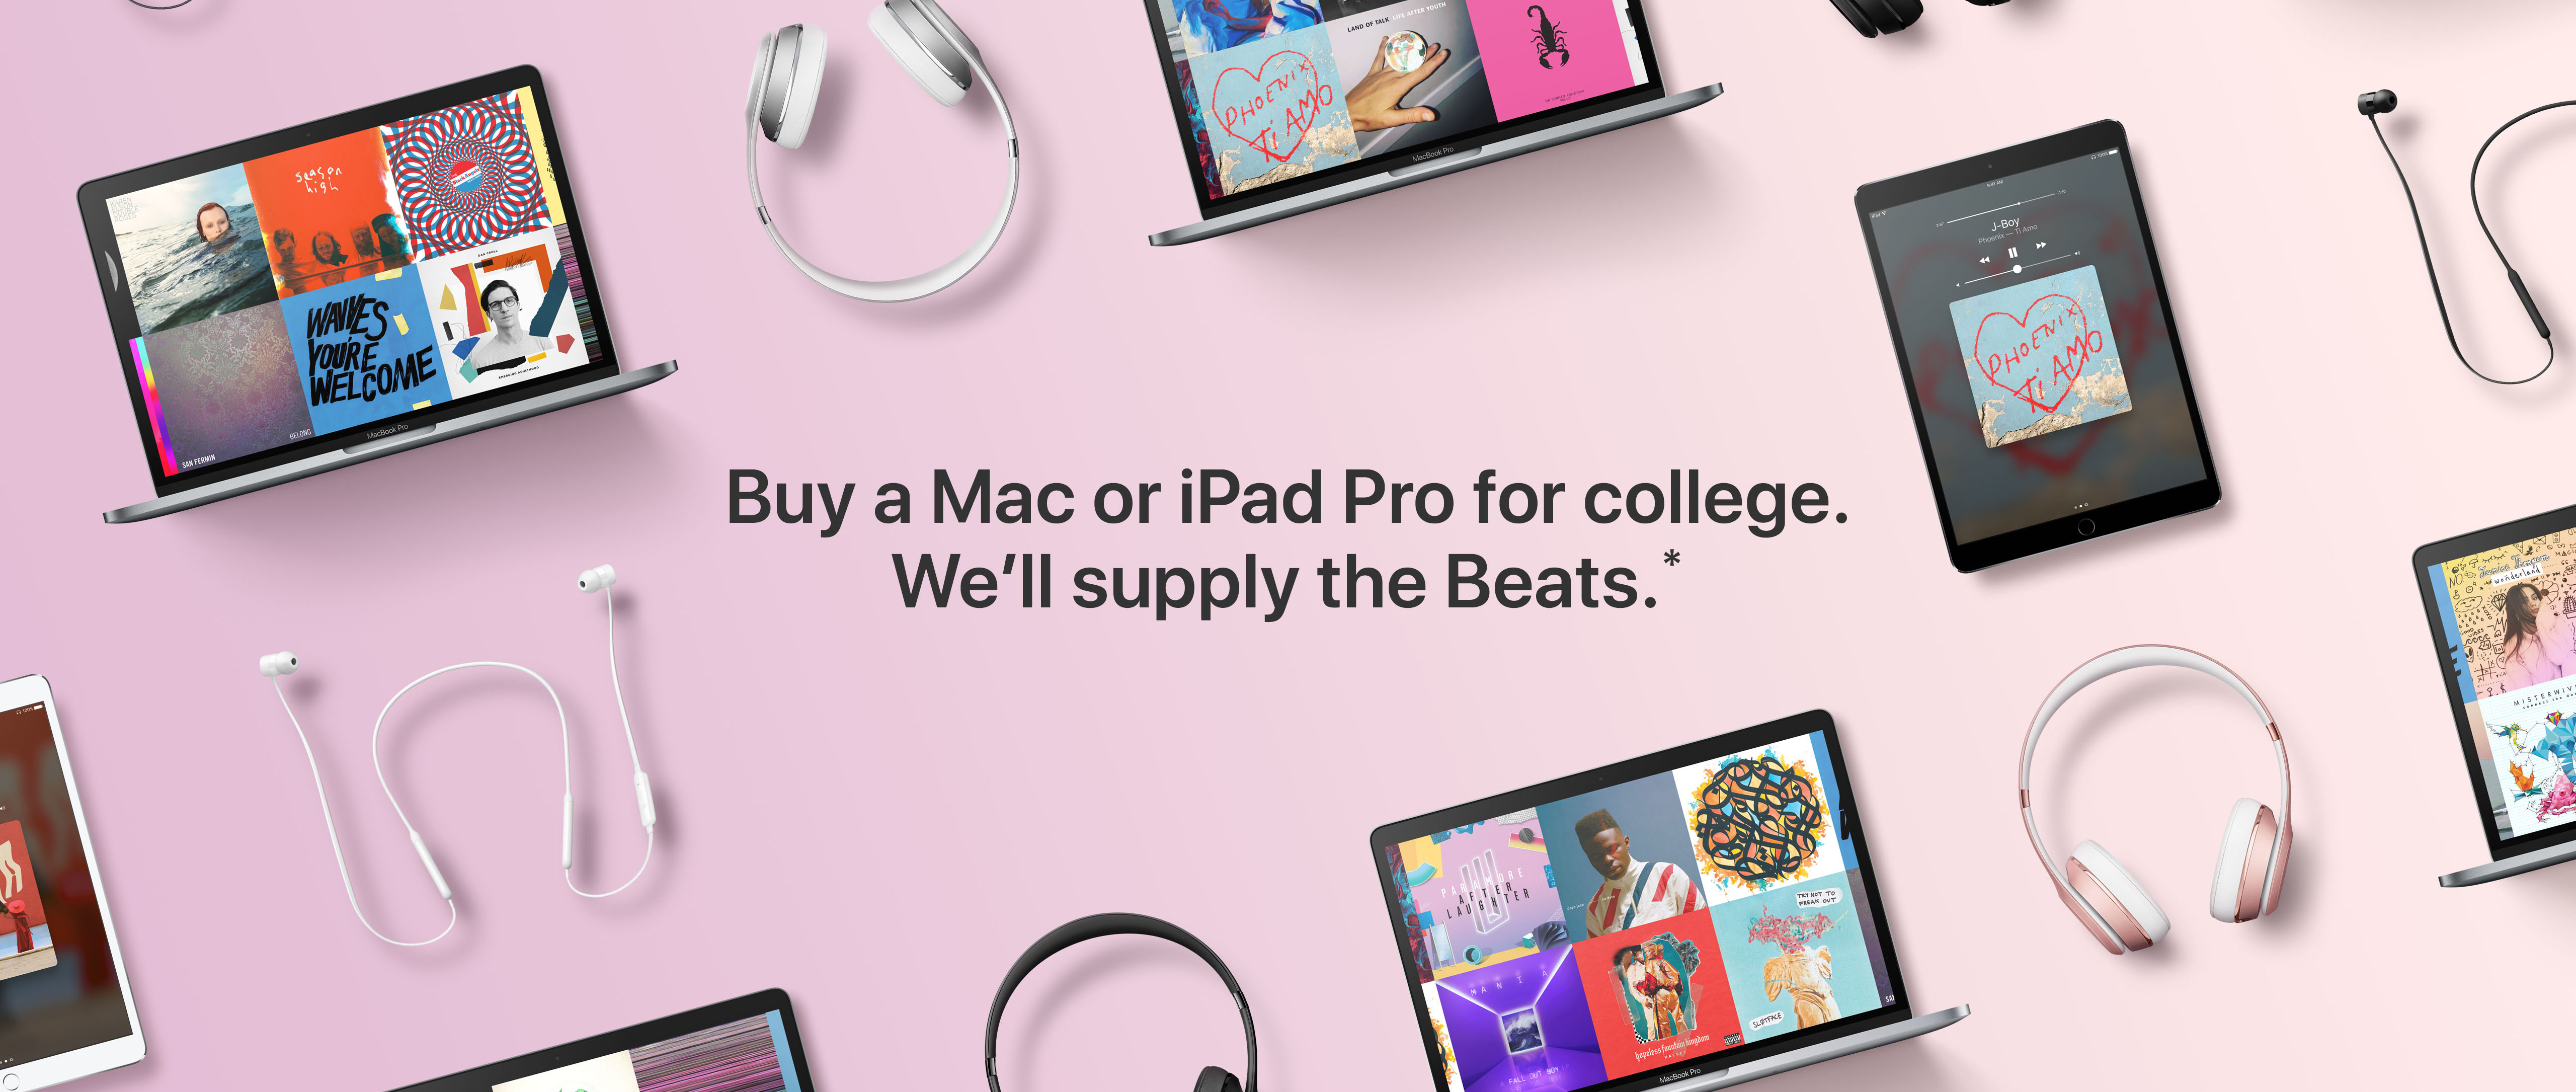 Buy a Mac or Ipad Pro for college. We'll supply the beats